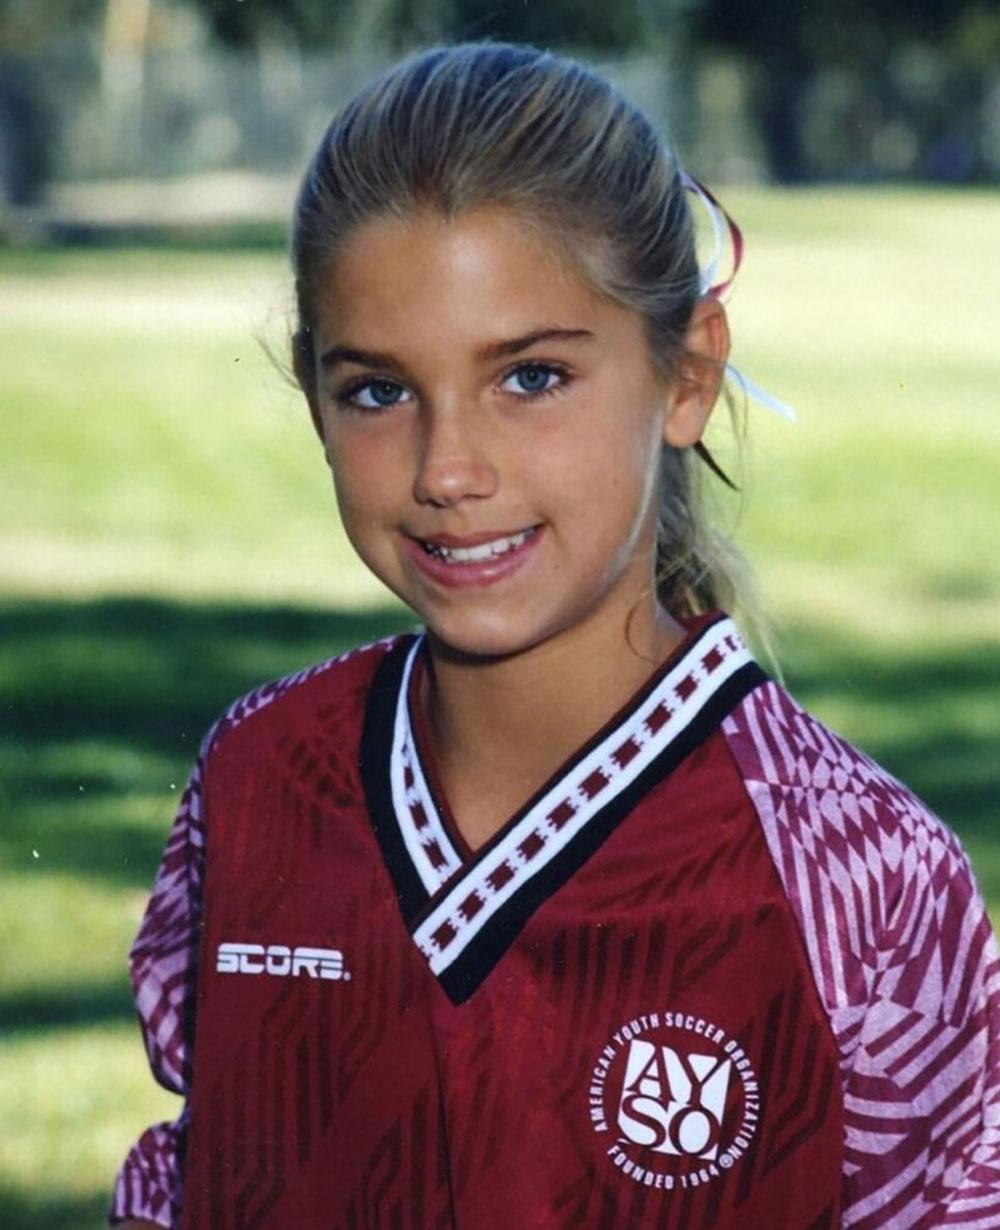 Alex Morgan in her AYSO youth soccer days